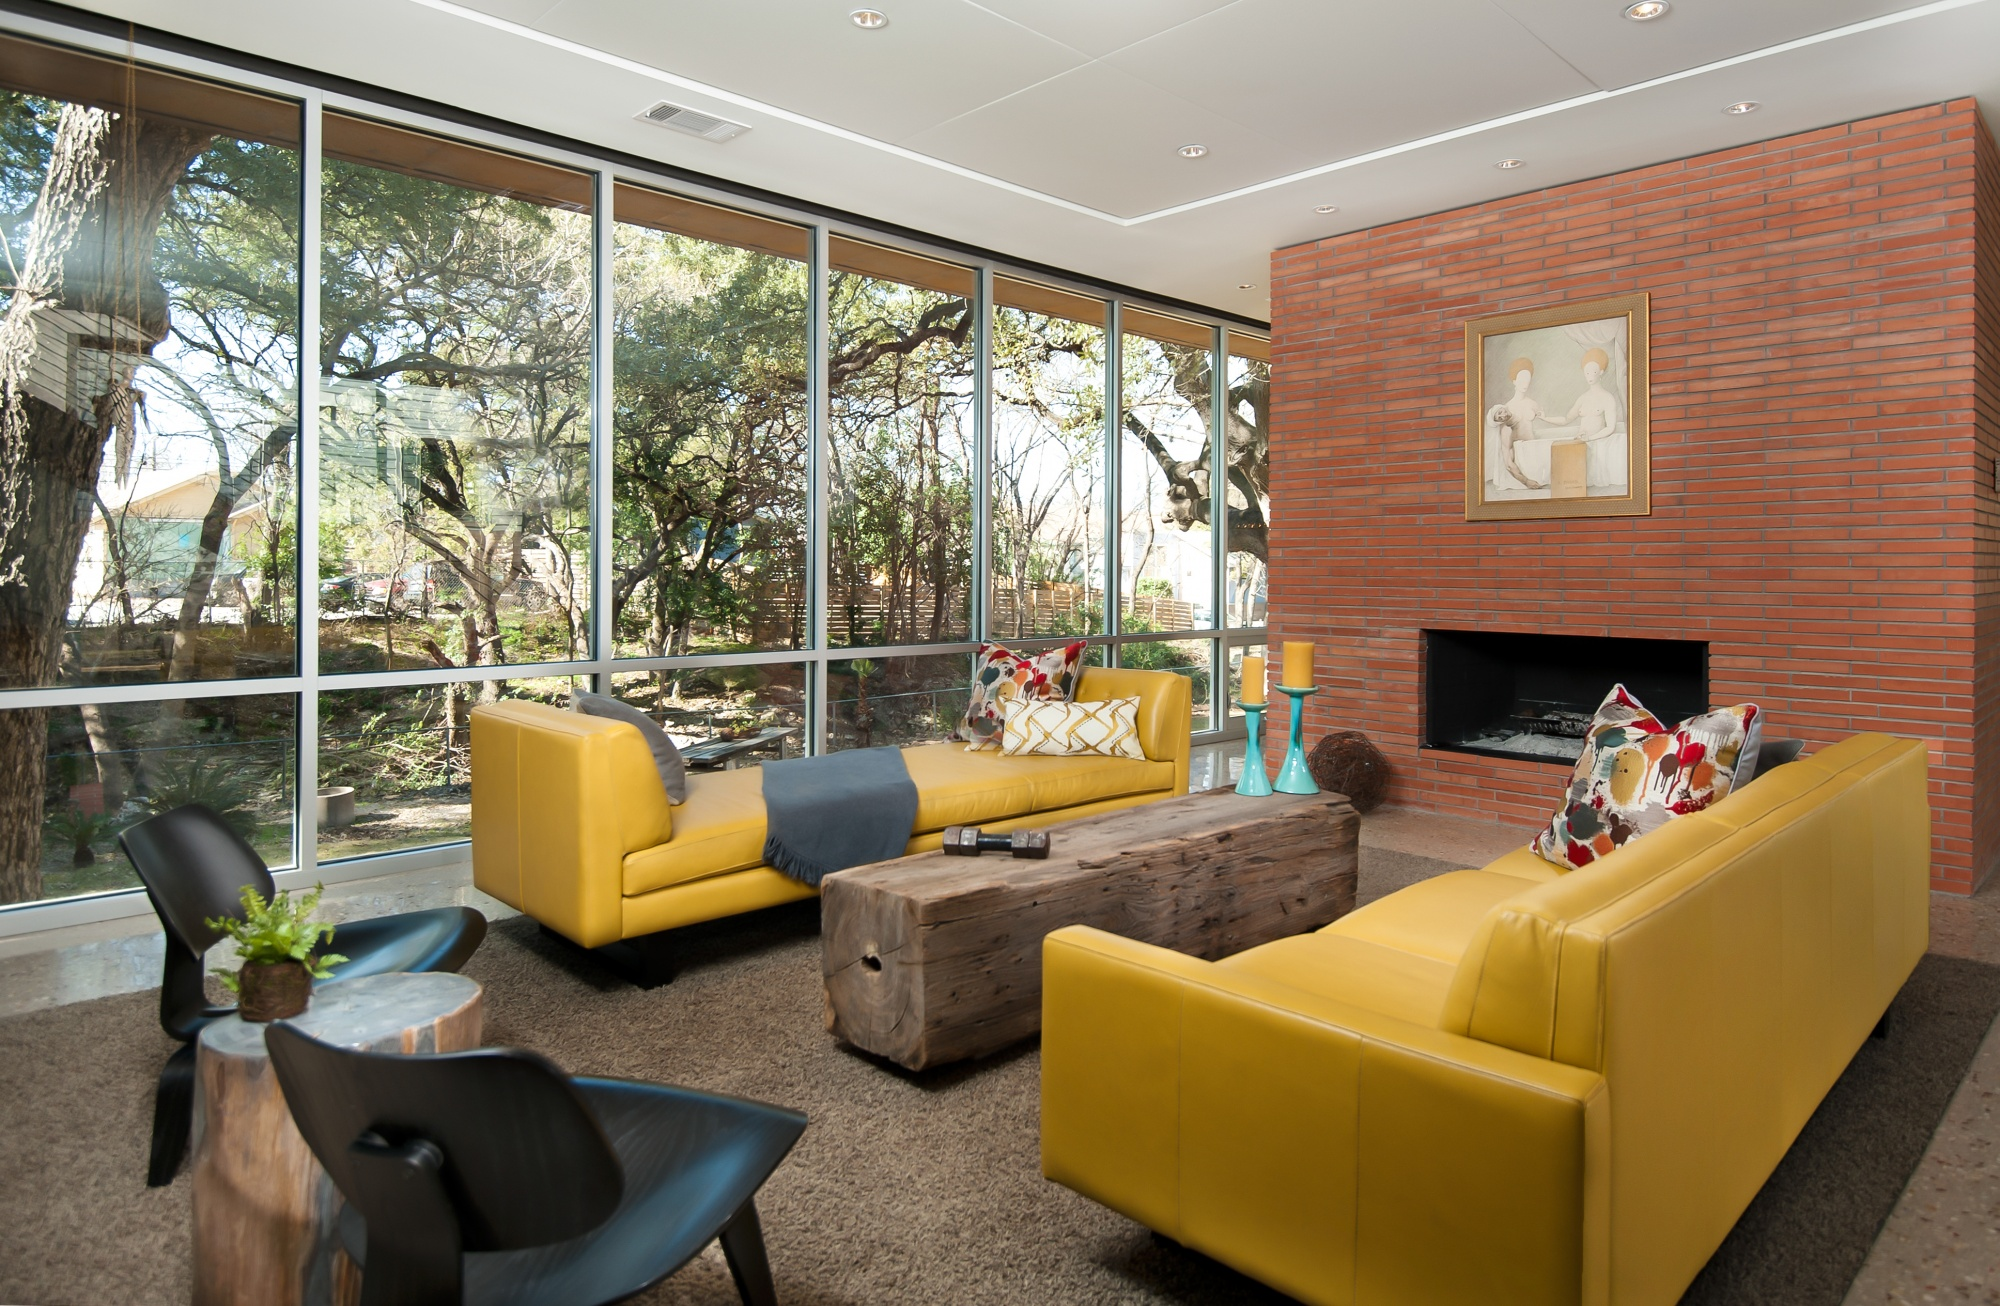 Floor to ceiling glass open up the outdoors to this cozy living room.